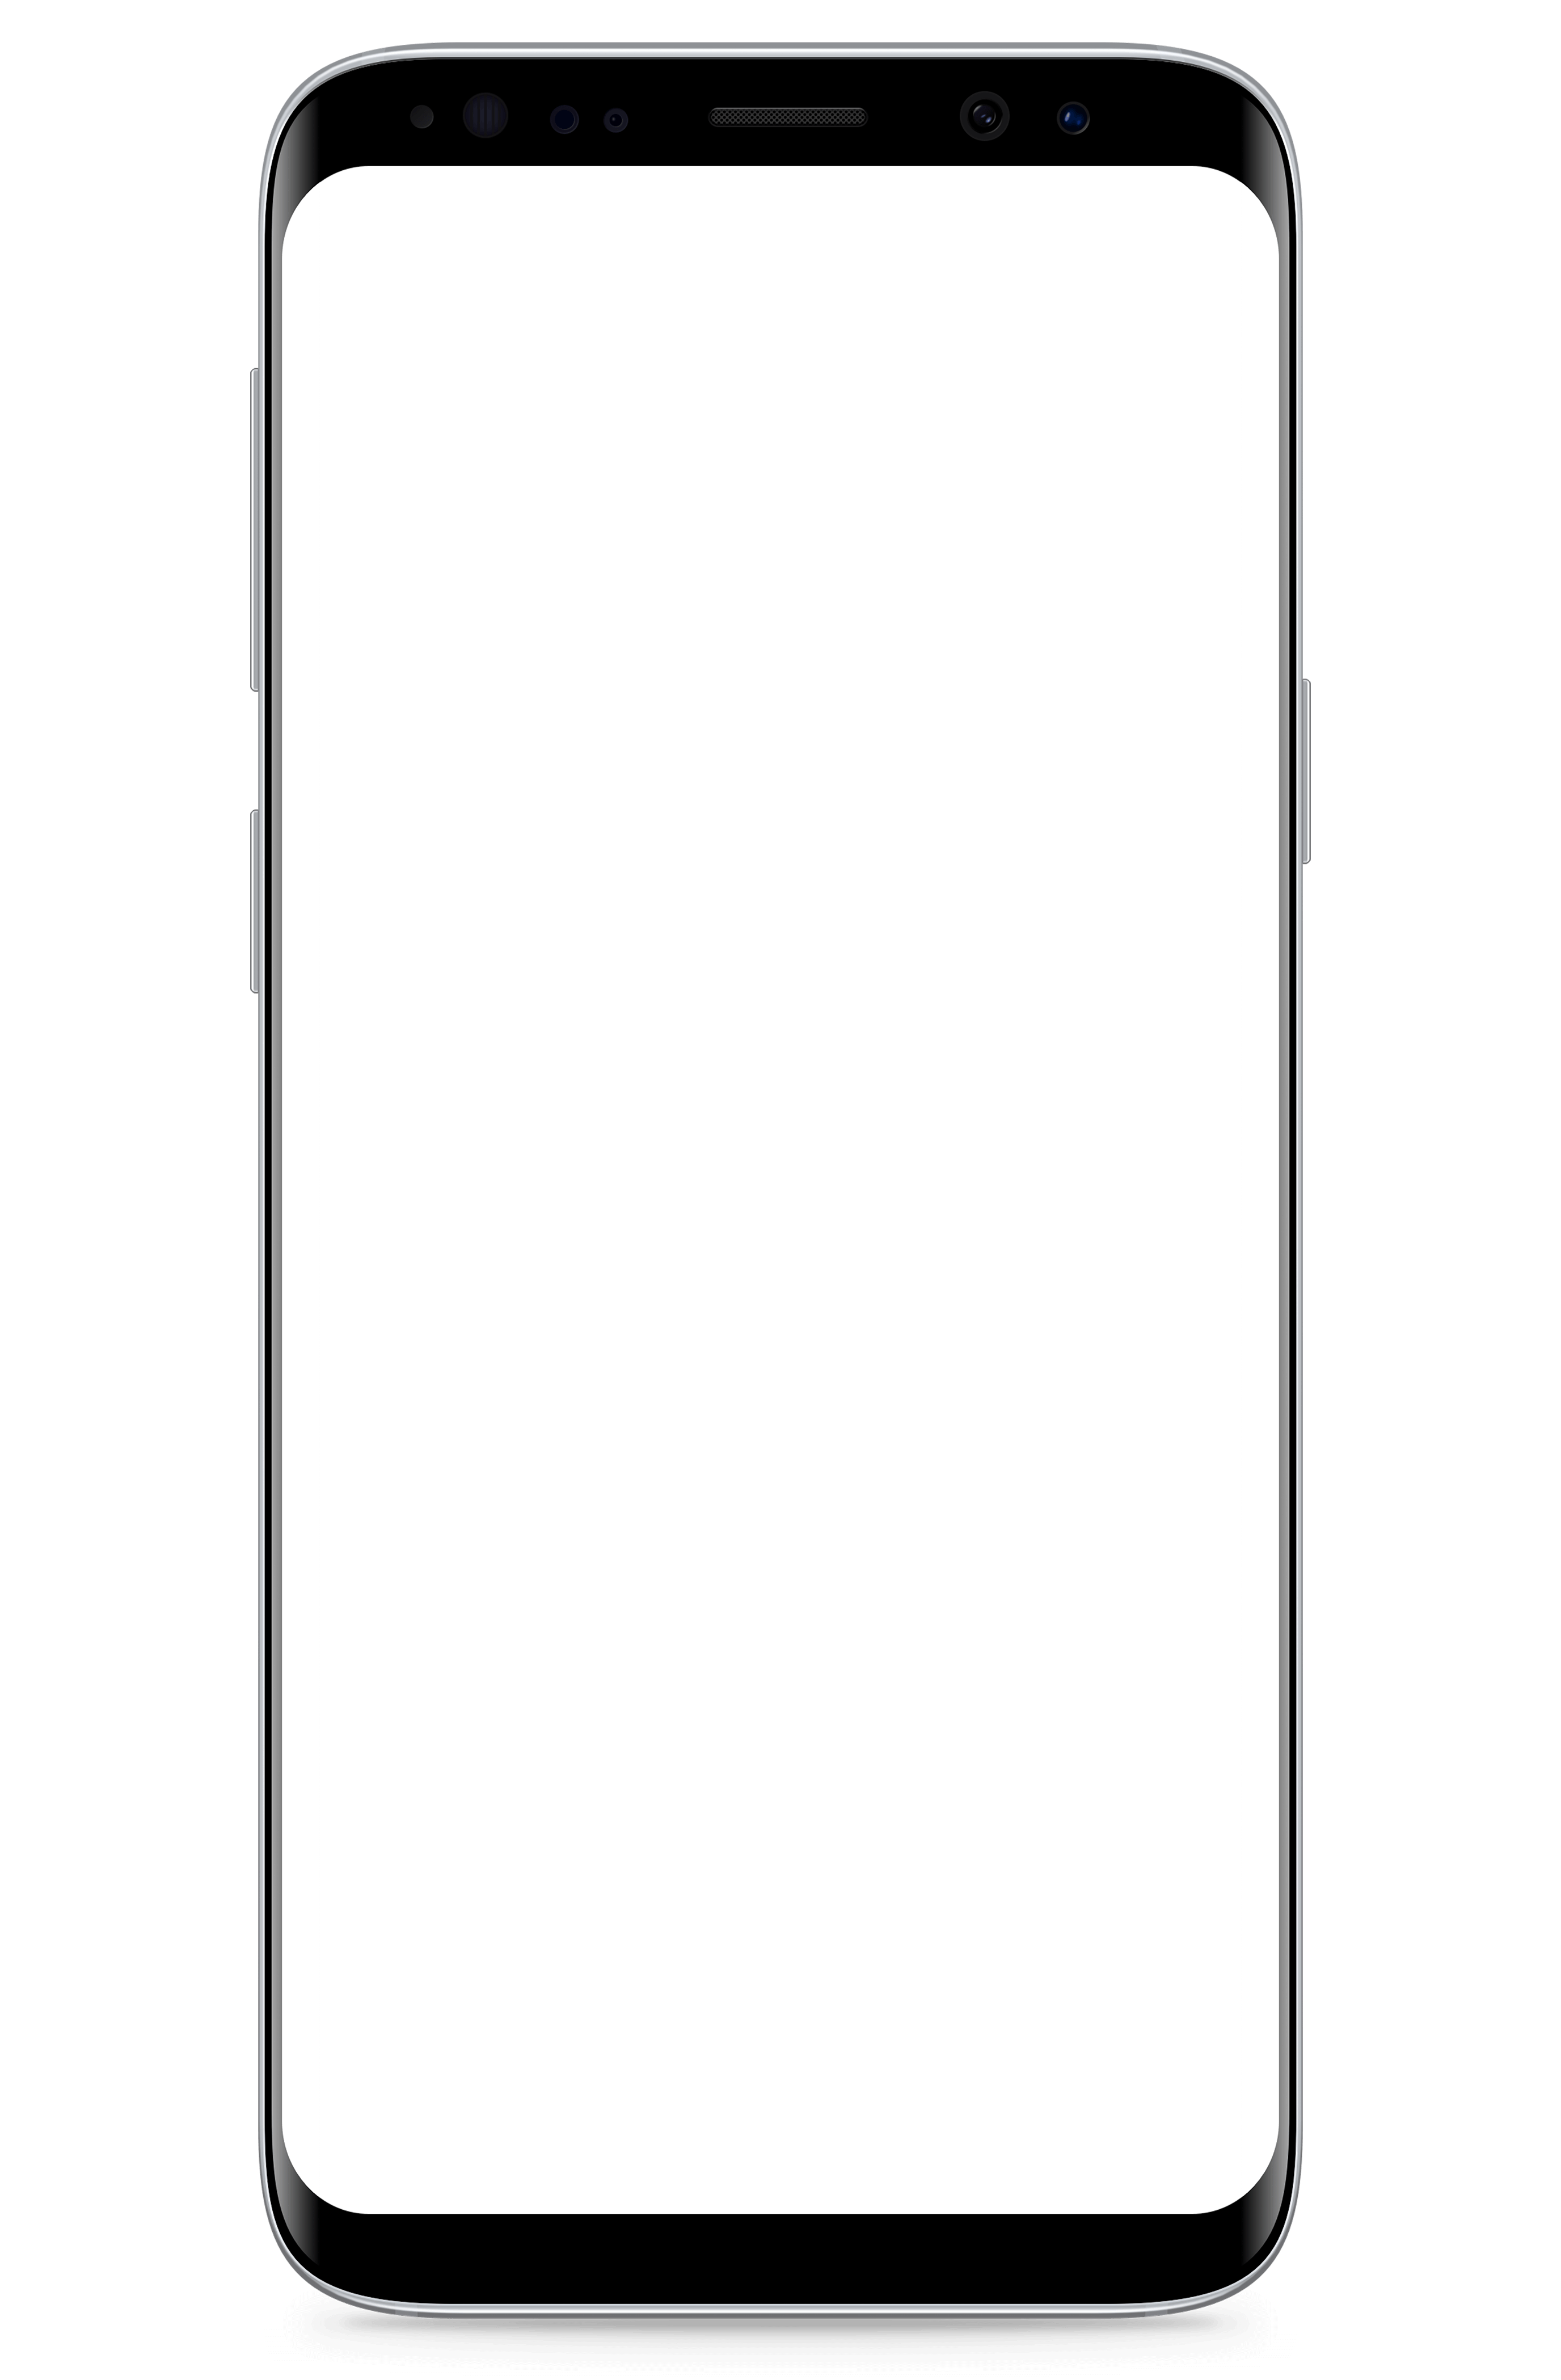 Galaxy S9 Png & Free Galaxy S9.png Transparent Images #41384.